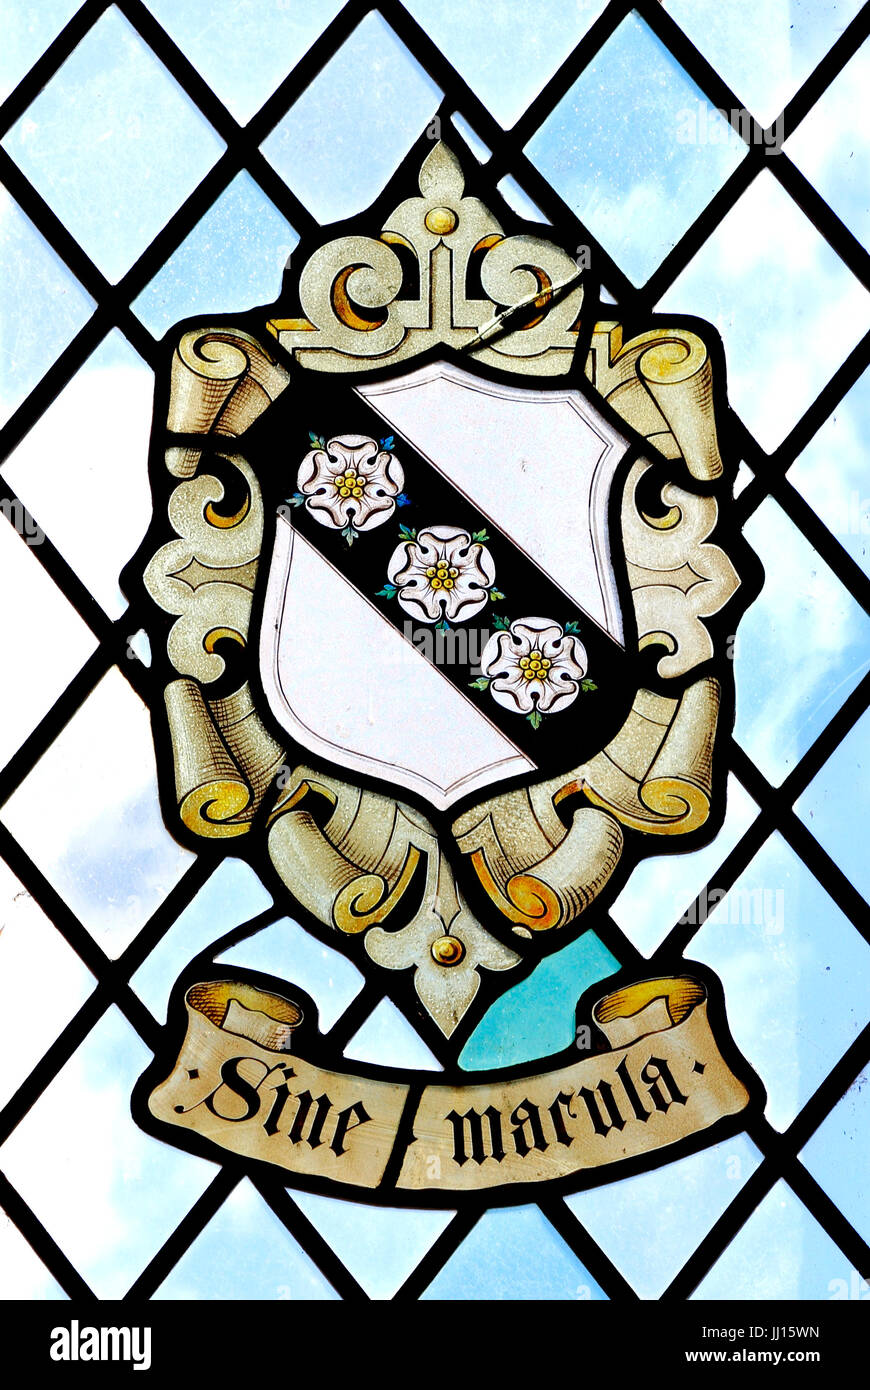 Sine Macula, Without Blemish, Without Stain, heraldic, heraldry, stained glass window of the Carey Family, East - Stock Image